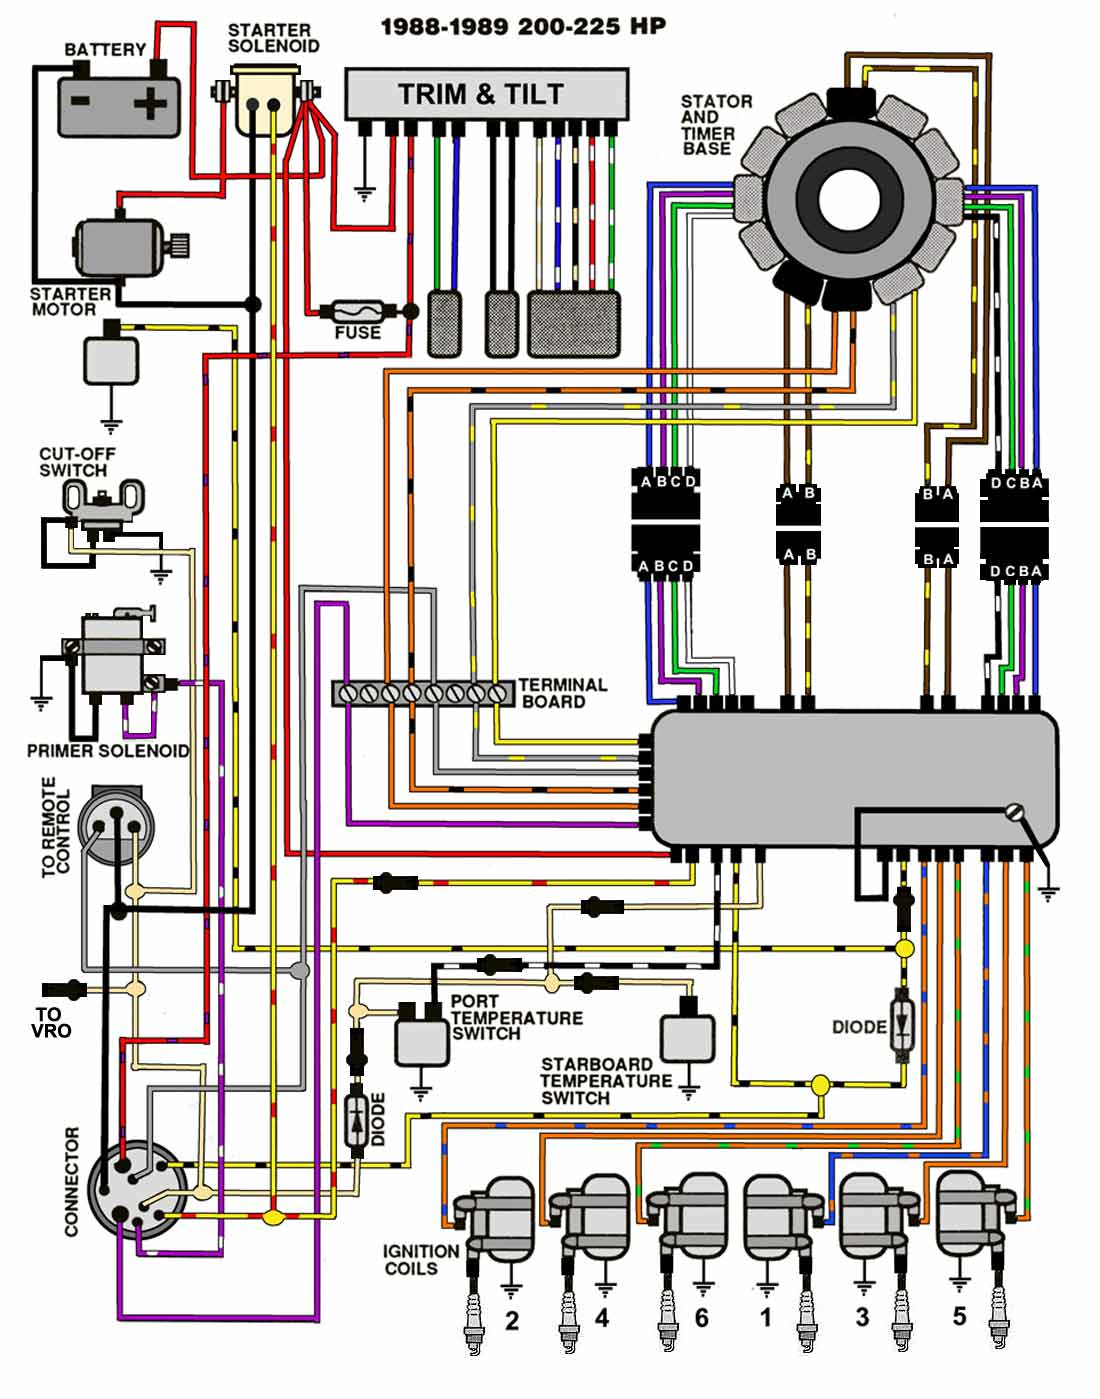 evinrude 115 ficht wiring diagram warn winch 8274 johnson 88 spl library 2000 circuit connection u2022 1989 9